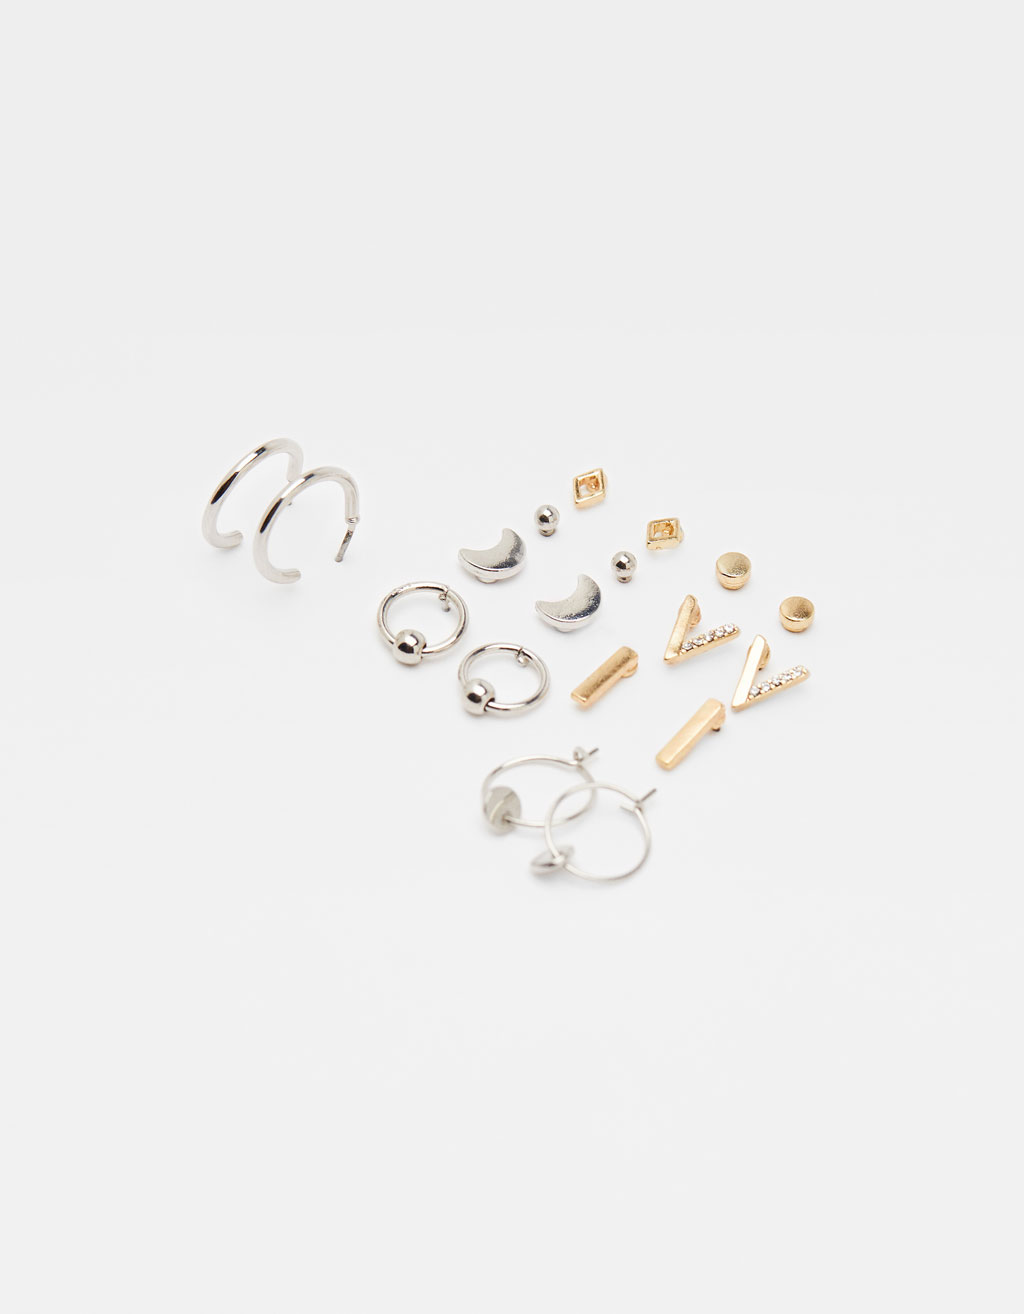 Set of minimalist earrings